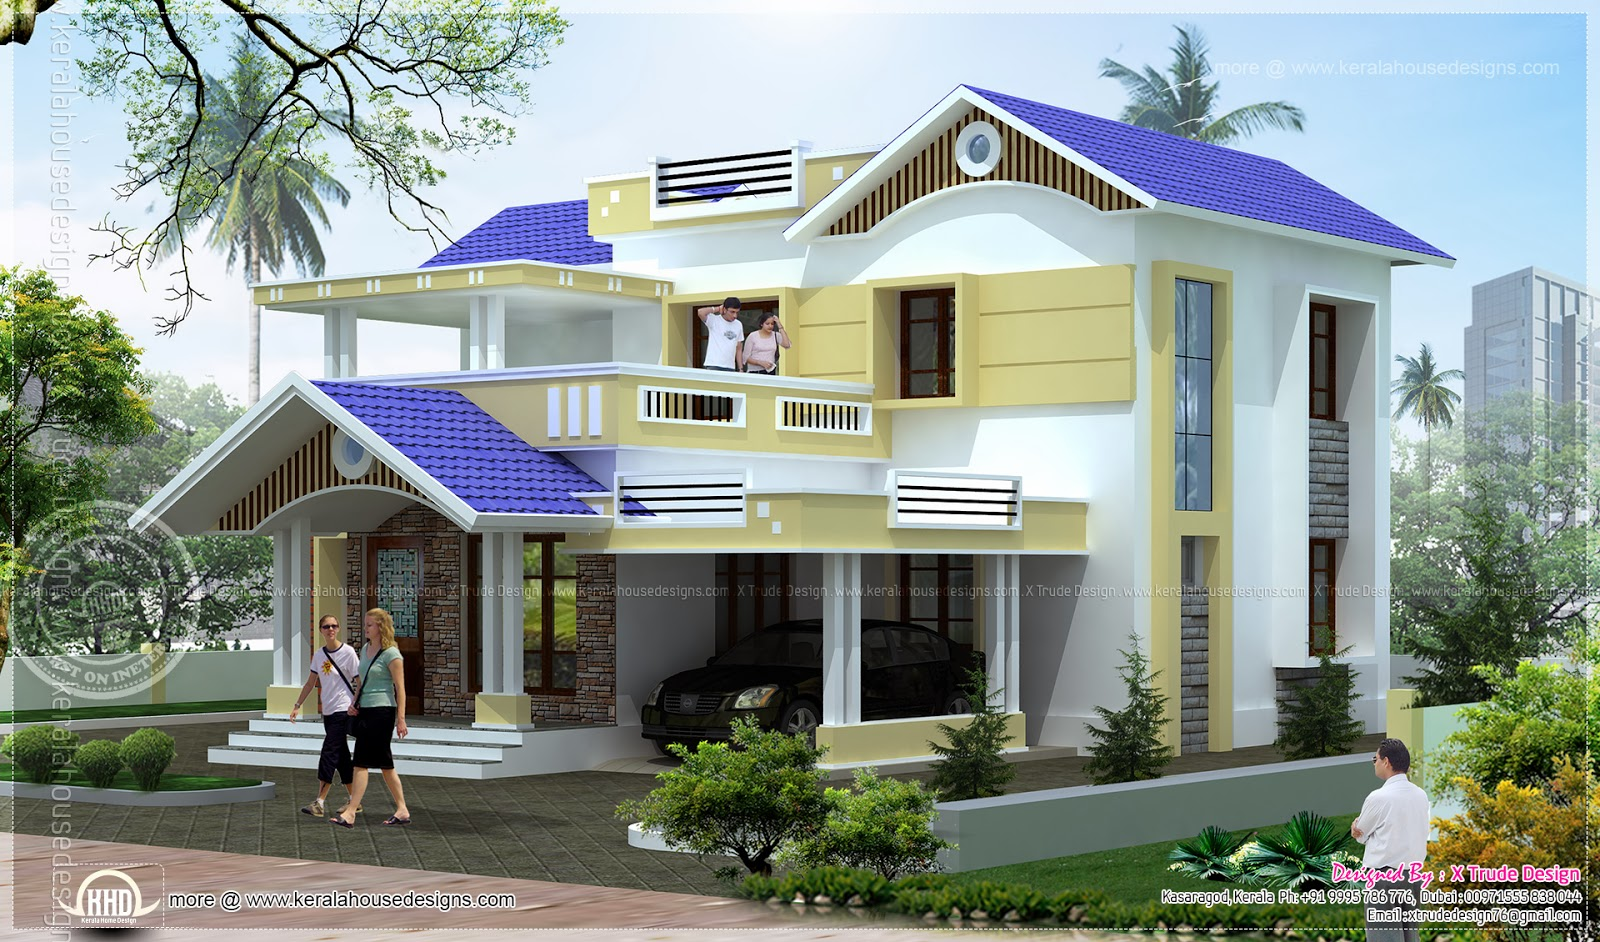 4 bedroom 1924 square feet house elevation kerala home for Khd home elevation